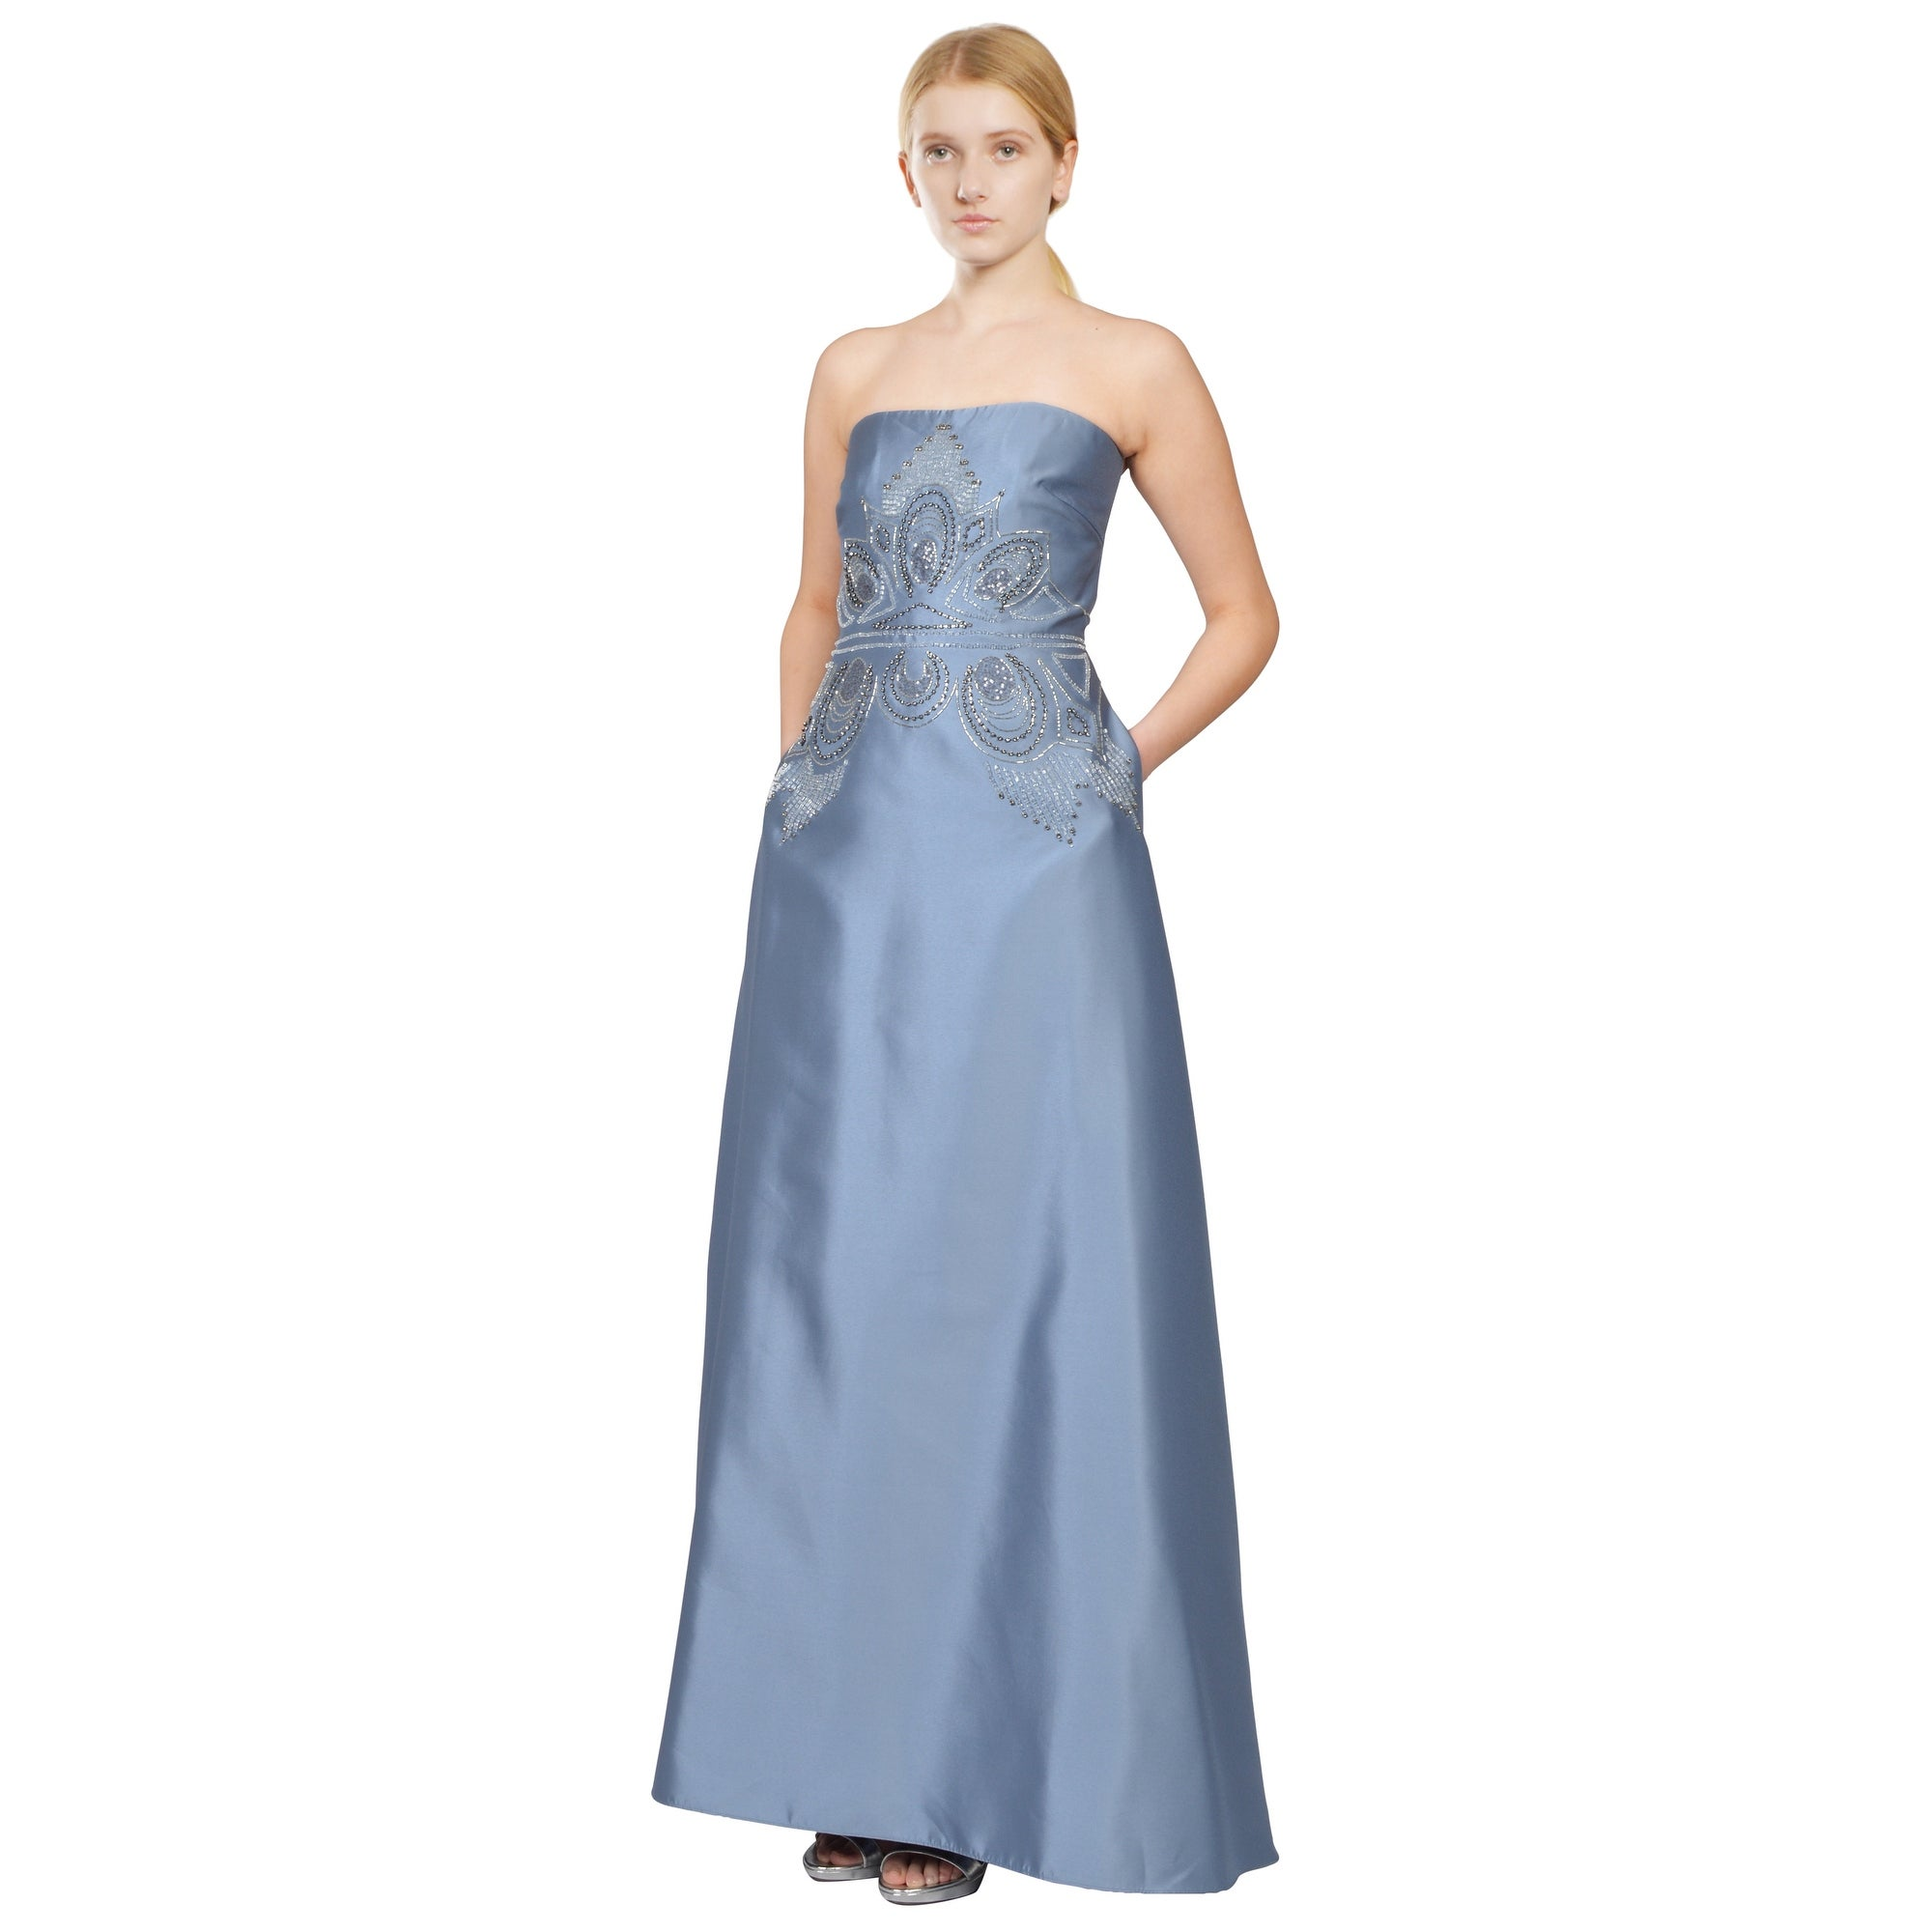 Shop Badgley Mischka Strapless Silky Twill Beaded Evening Gown Dress ...